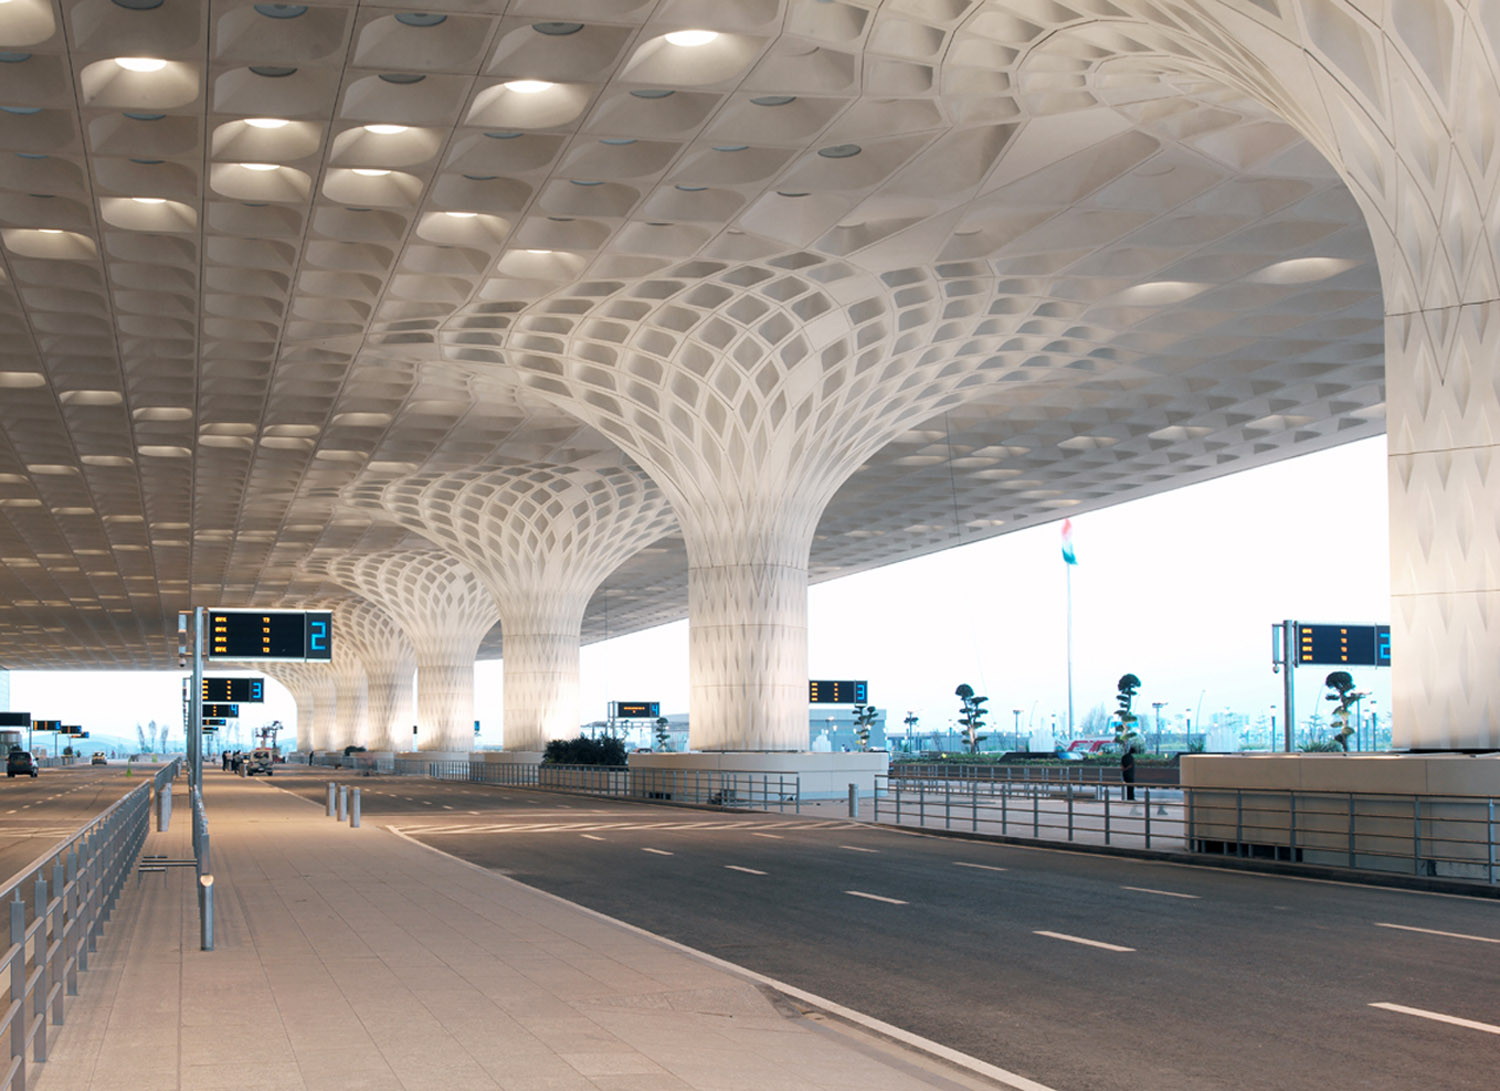 Chhatrapati Shivaji International Airport – Terminal 2 design by SOM